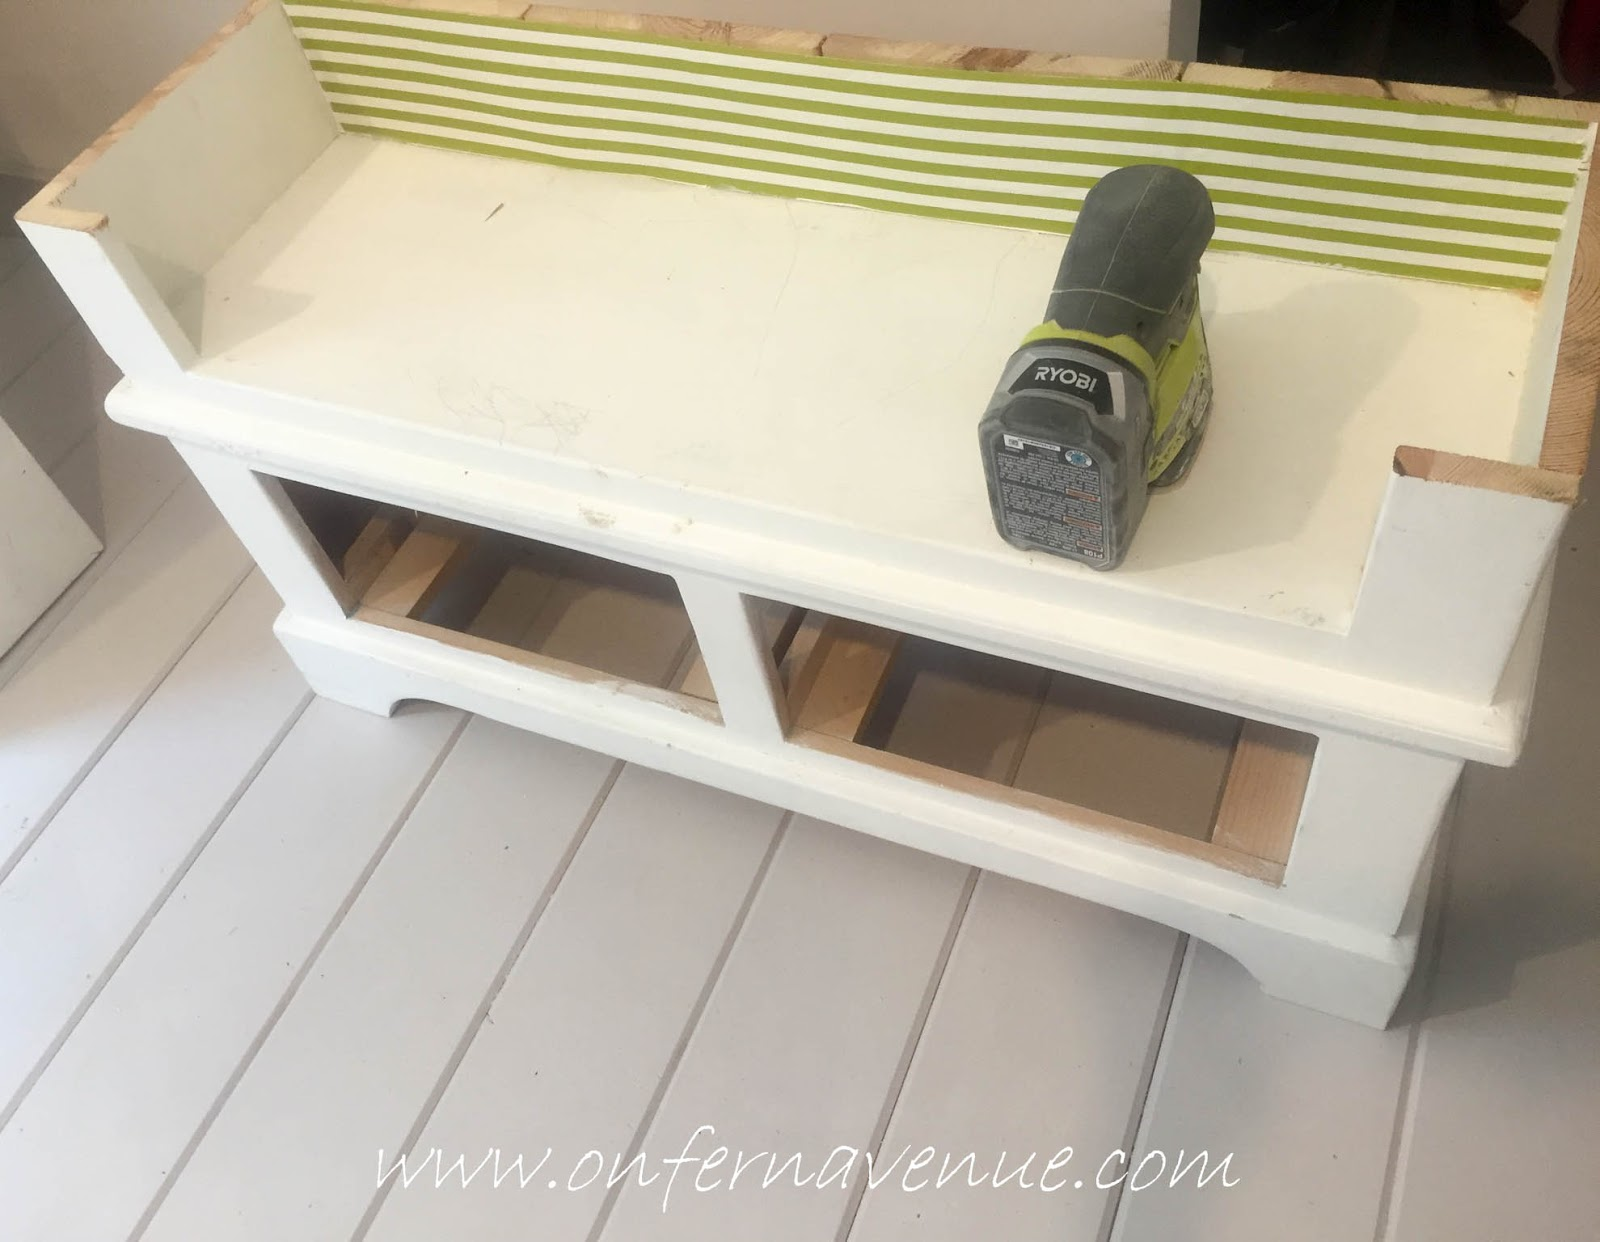 with epedit bench bookcases cube hack desk drawer ideas ledge big angled ikea knockout bookshelf room billy kid kids in bookcase book for nails wall shelf divider white